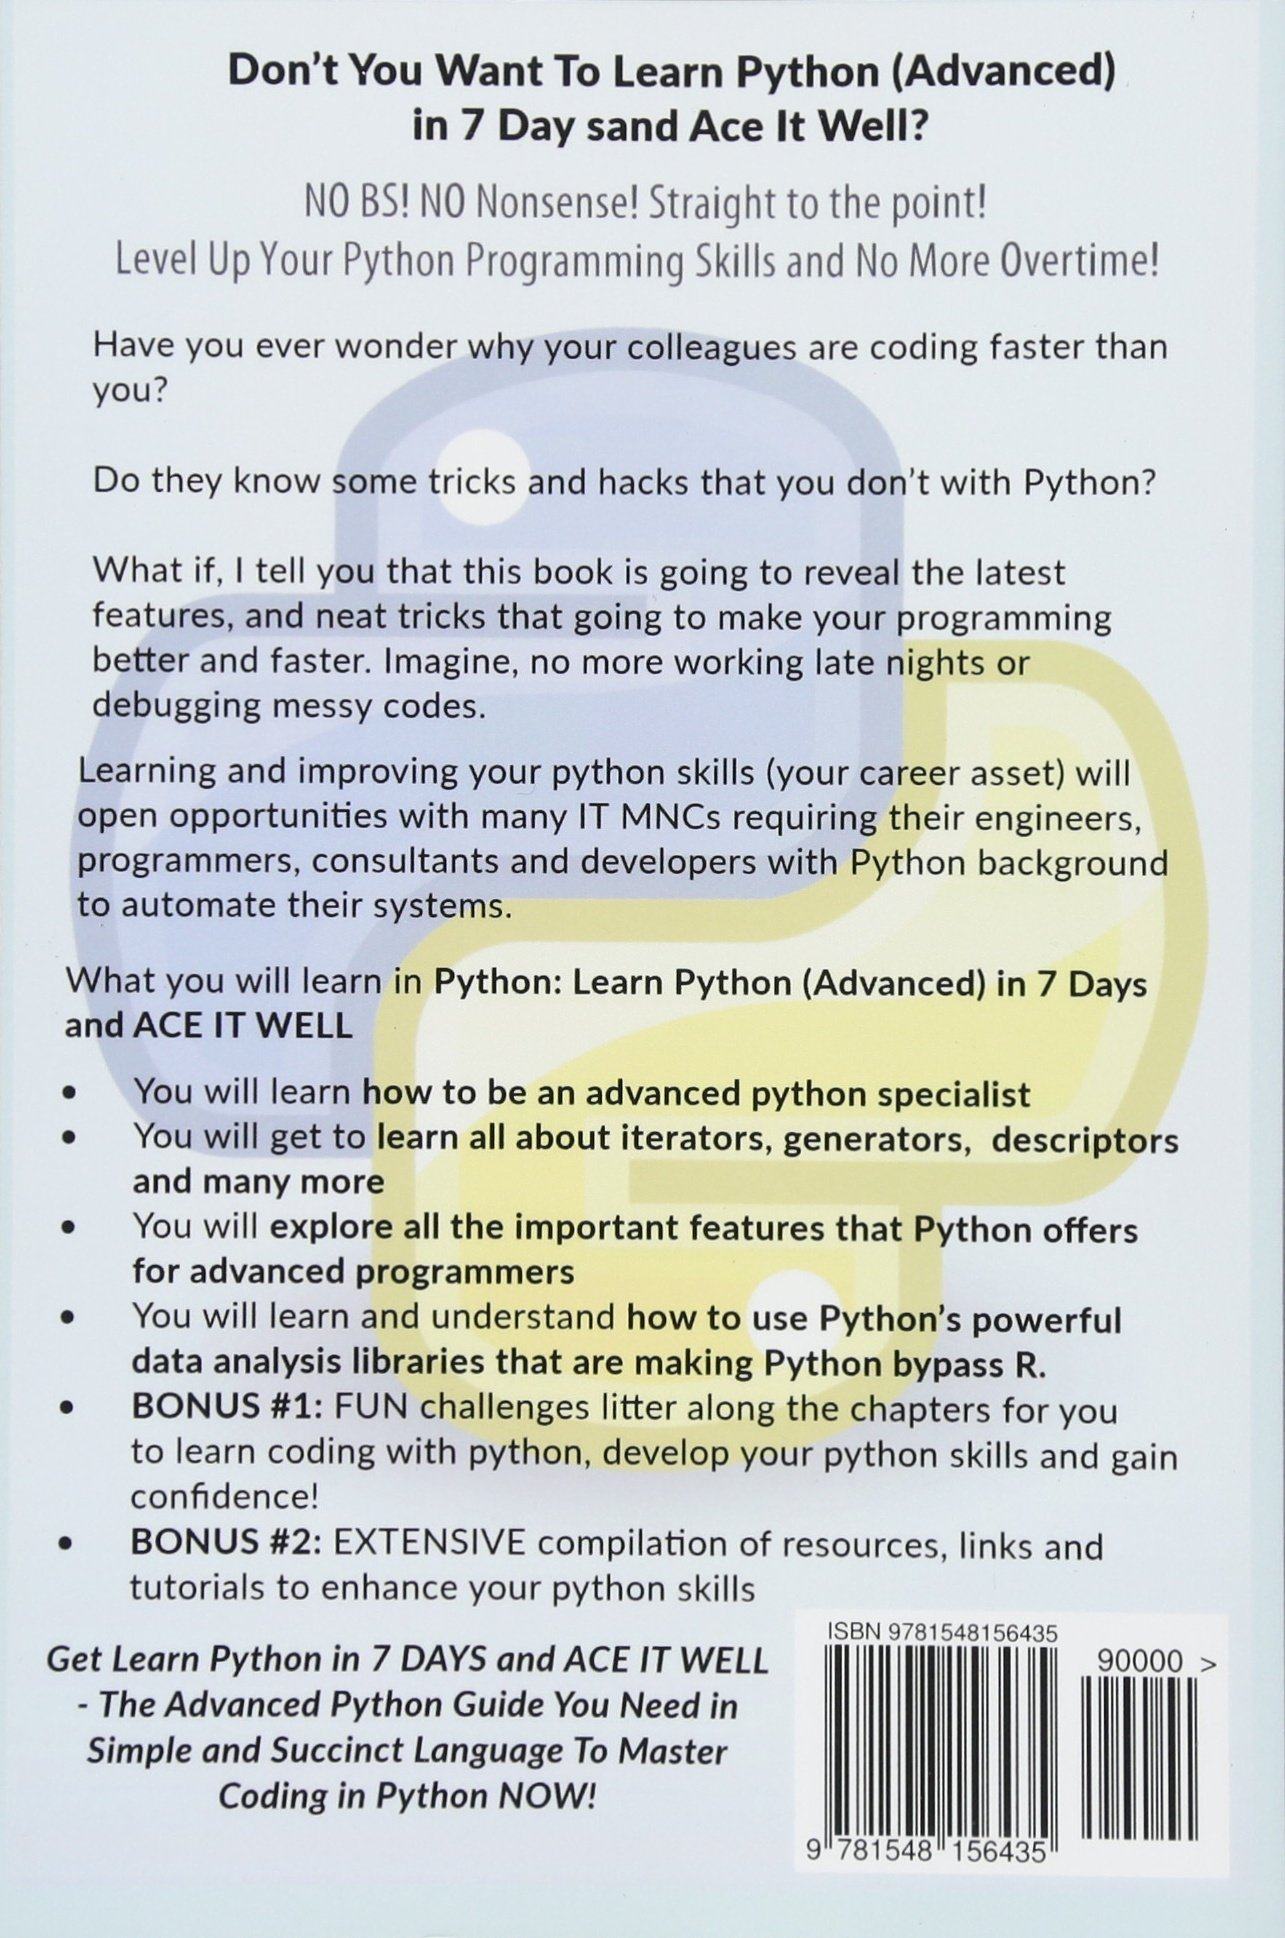 Python: Learn Python (Advanced) in 7 Days and Ace It Well  Hands On